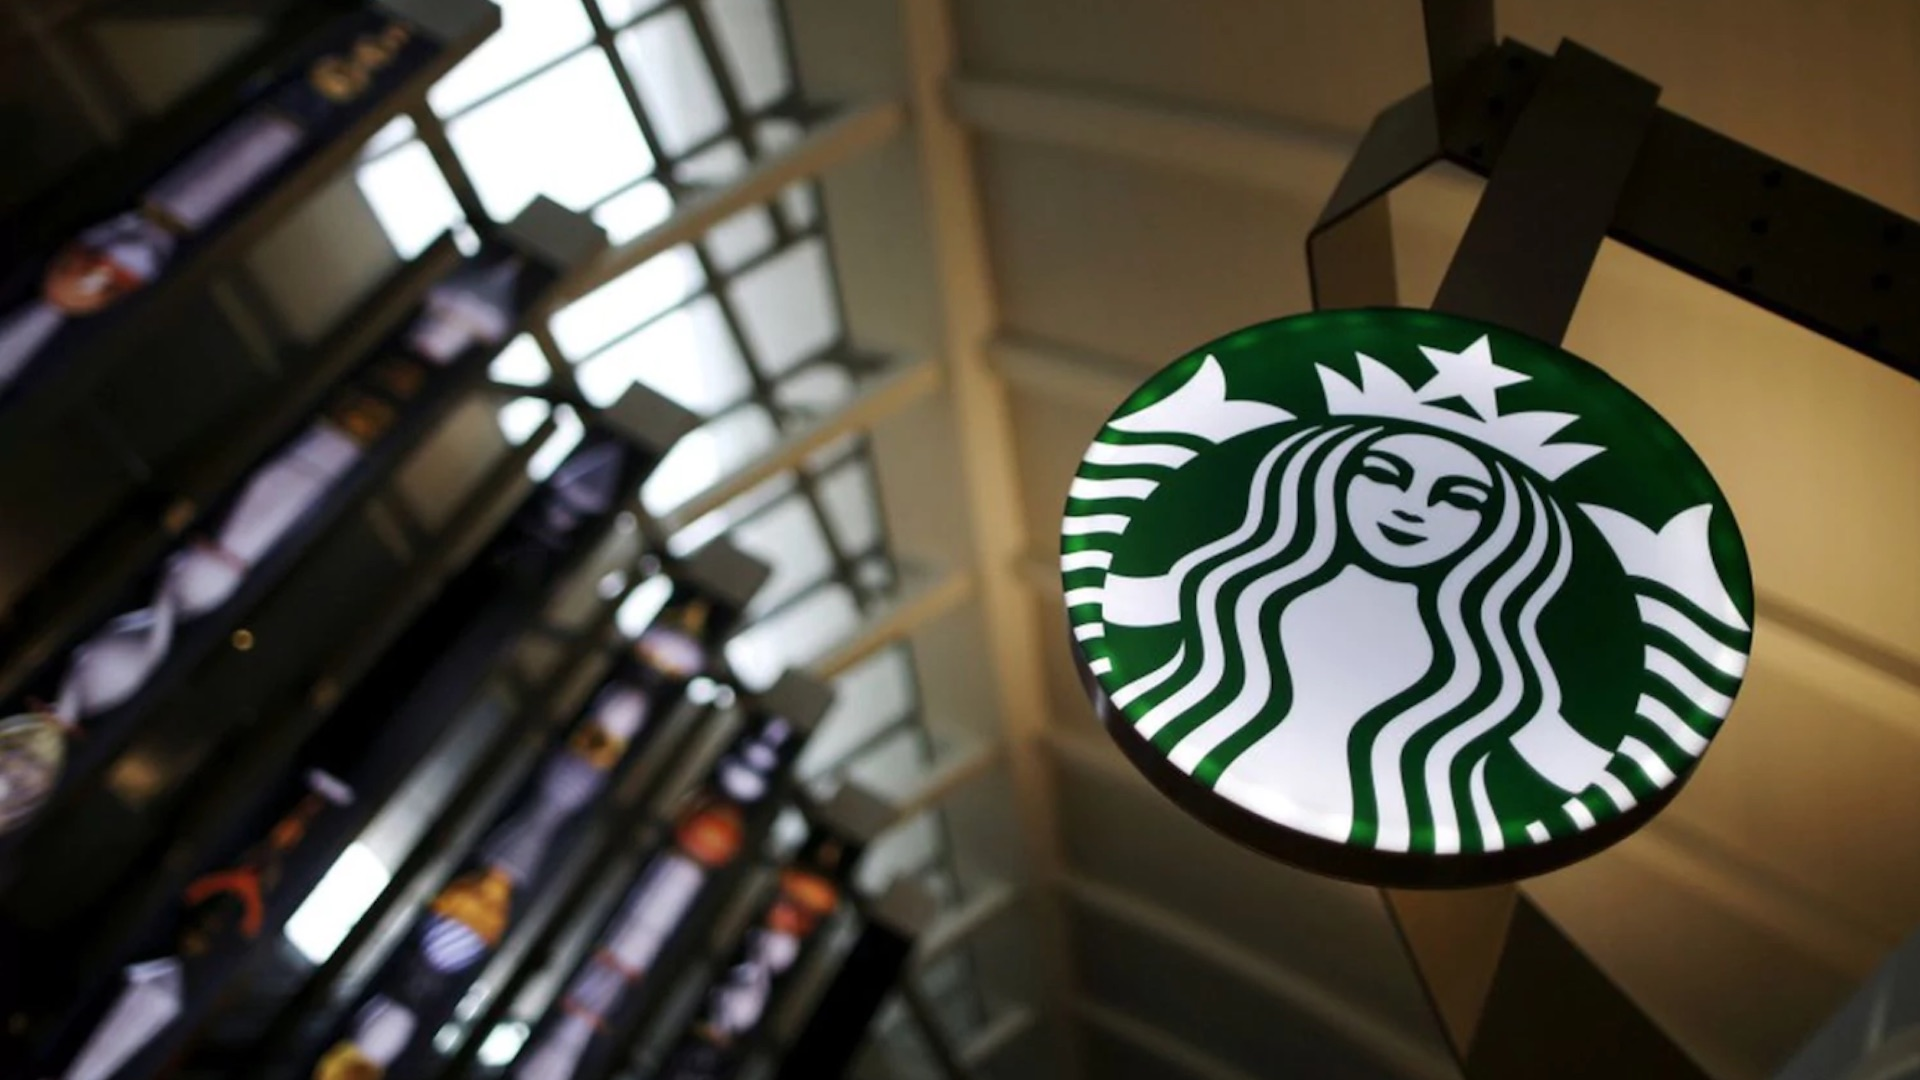 Starbucks to close 8,000 stores for racial-bias education on May 29 after arrest of two black men